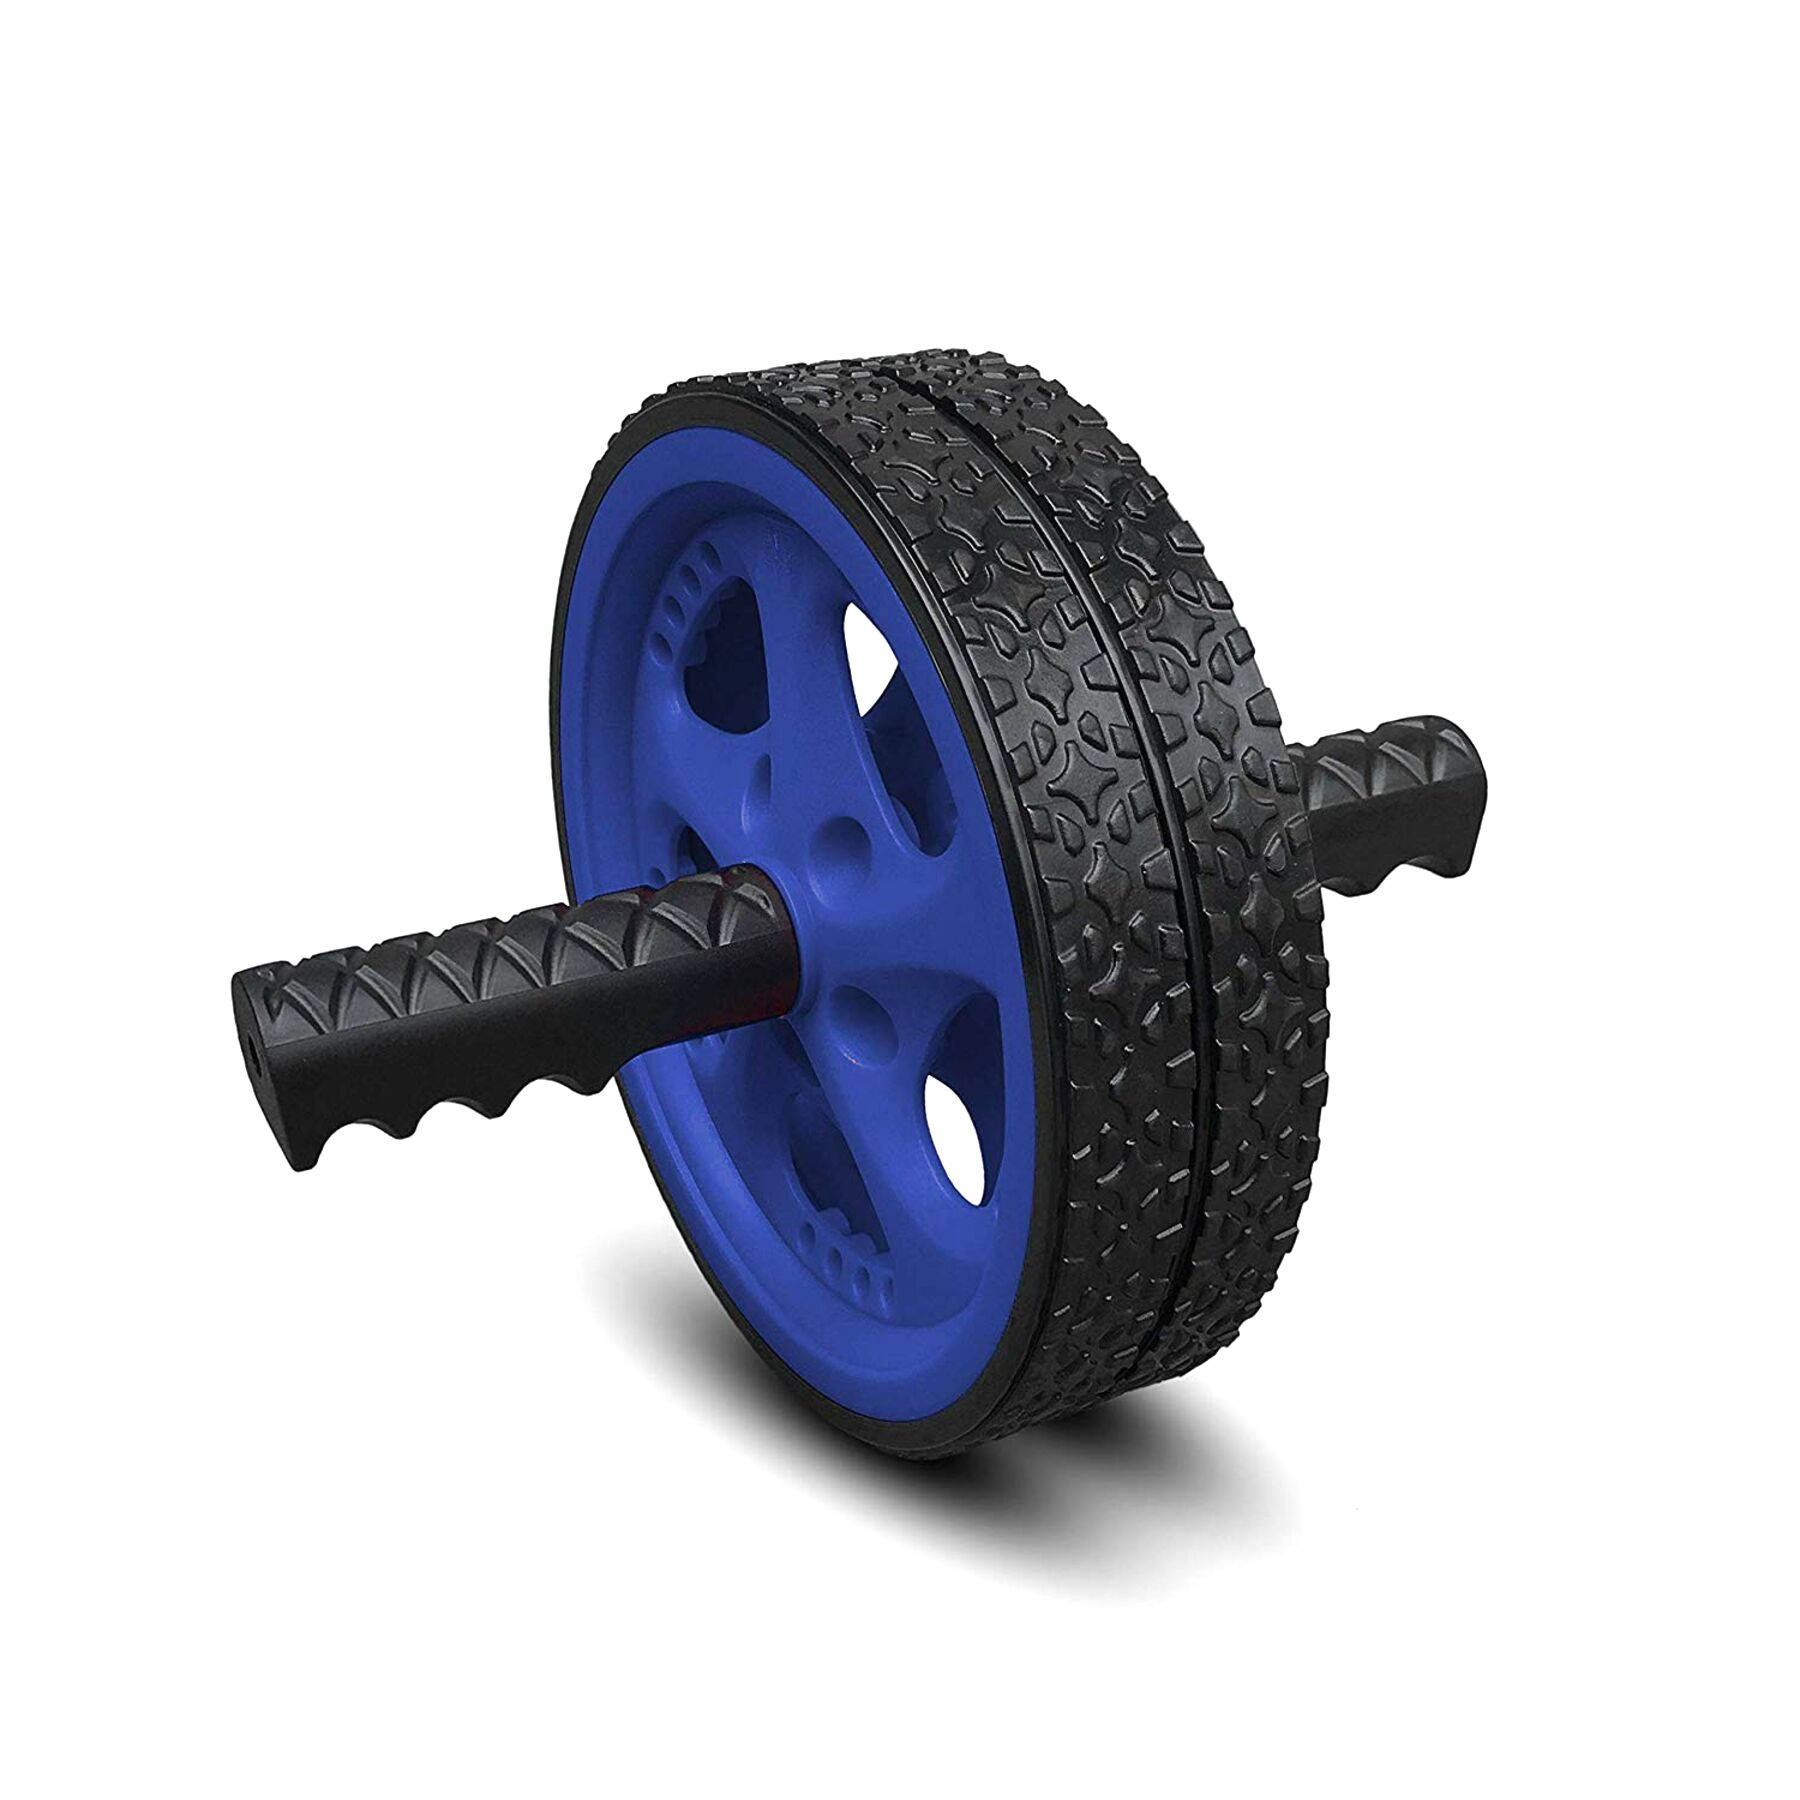 ab wheel for sale